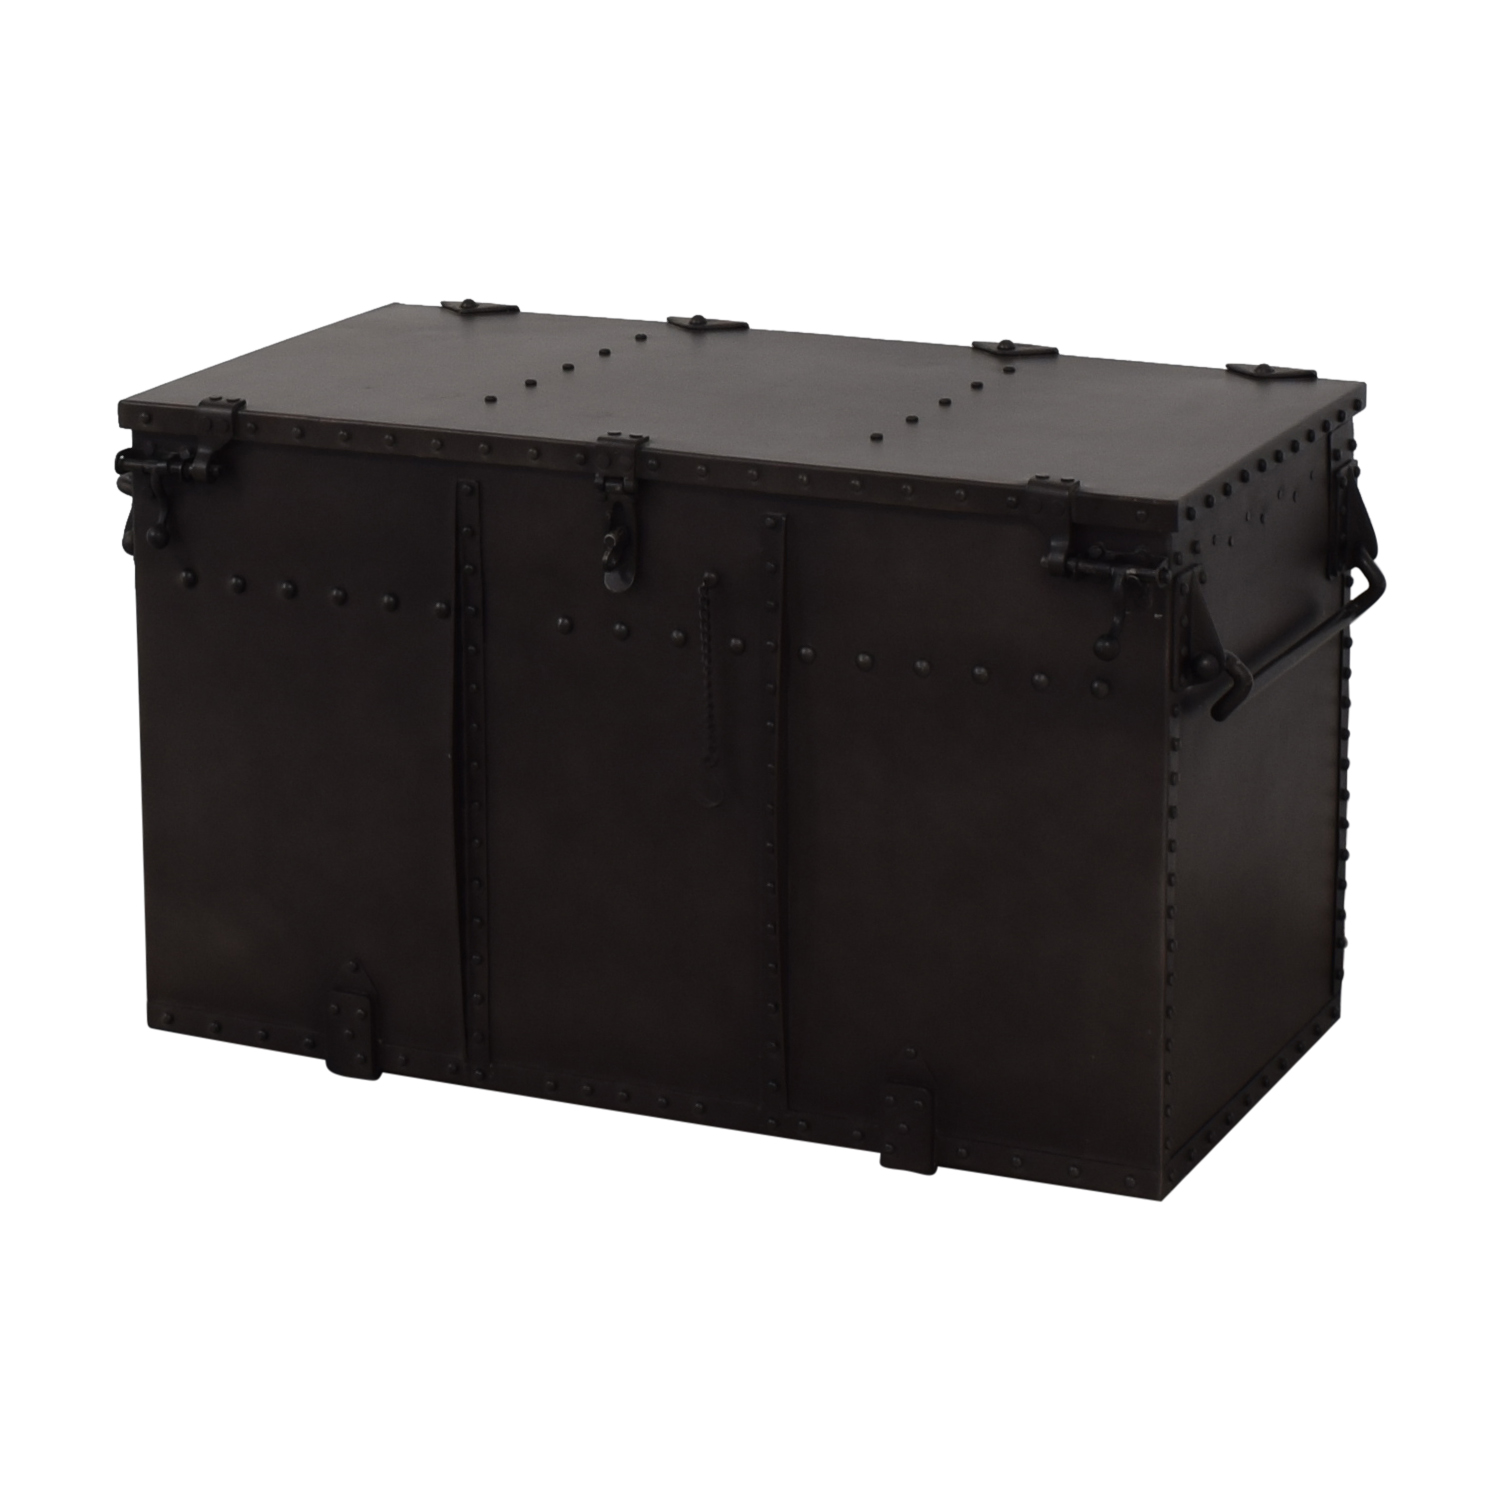 Restoration Hardware Restoration Hardware Metal Trunk for sale